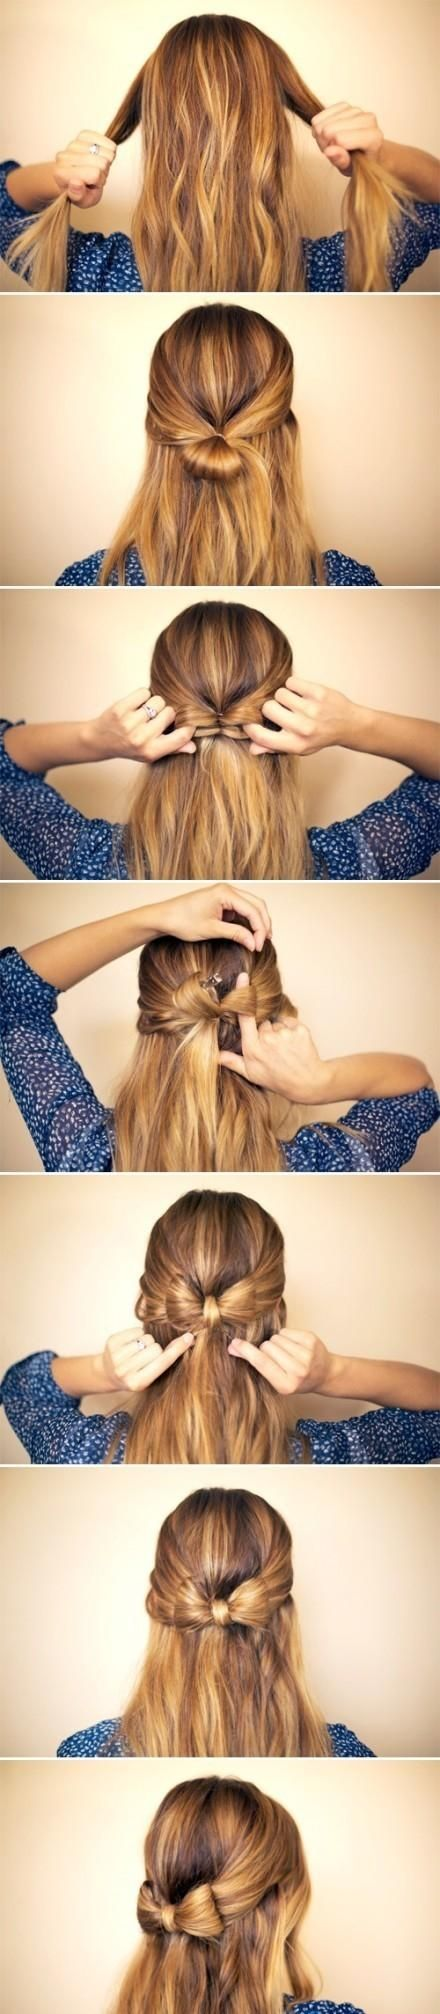 bow tie in hair